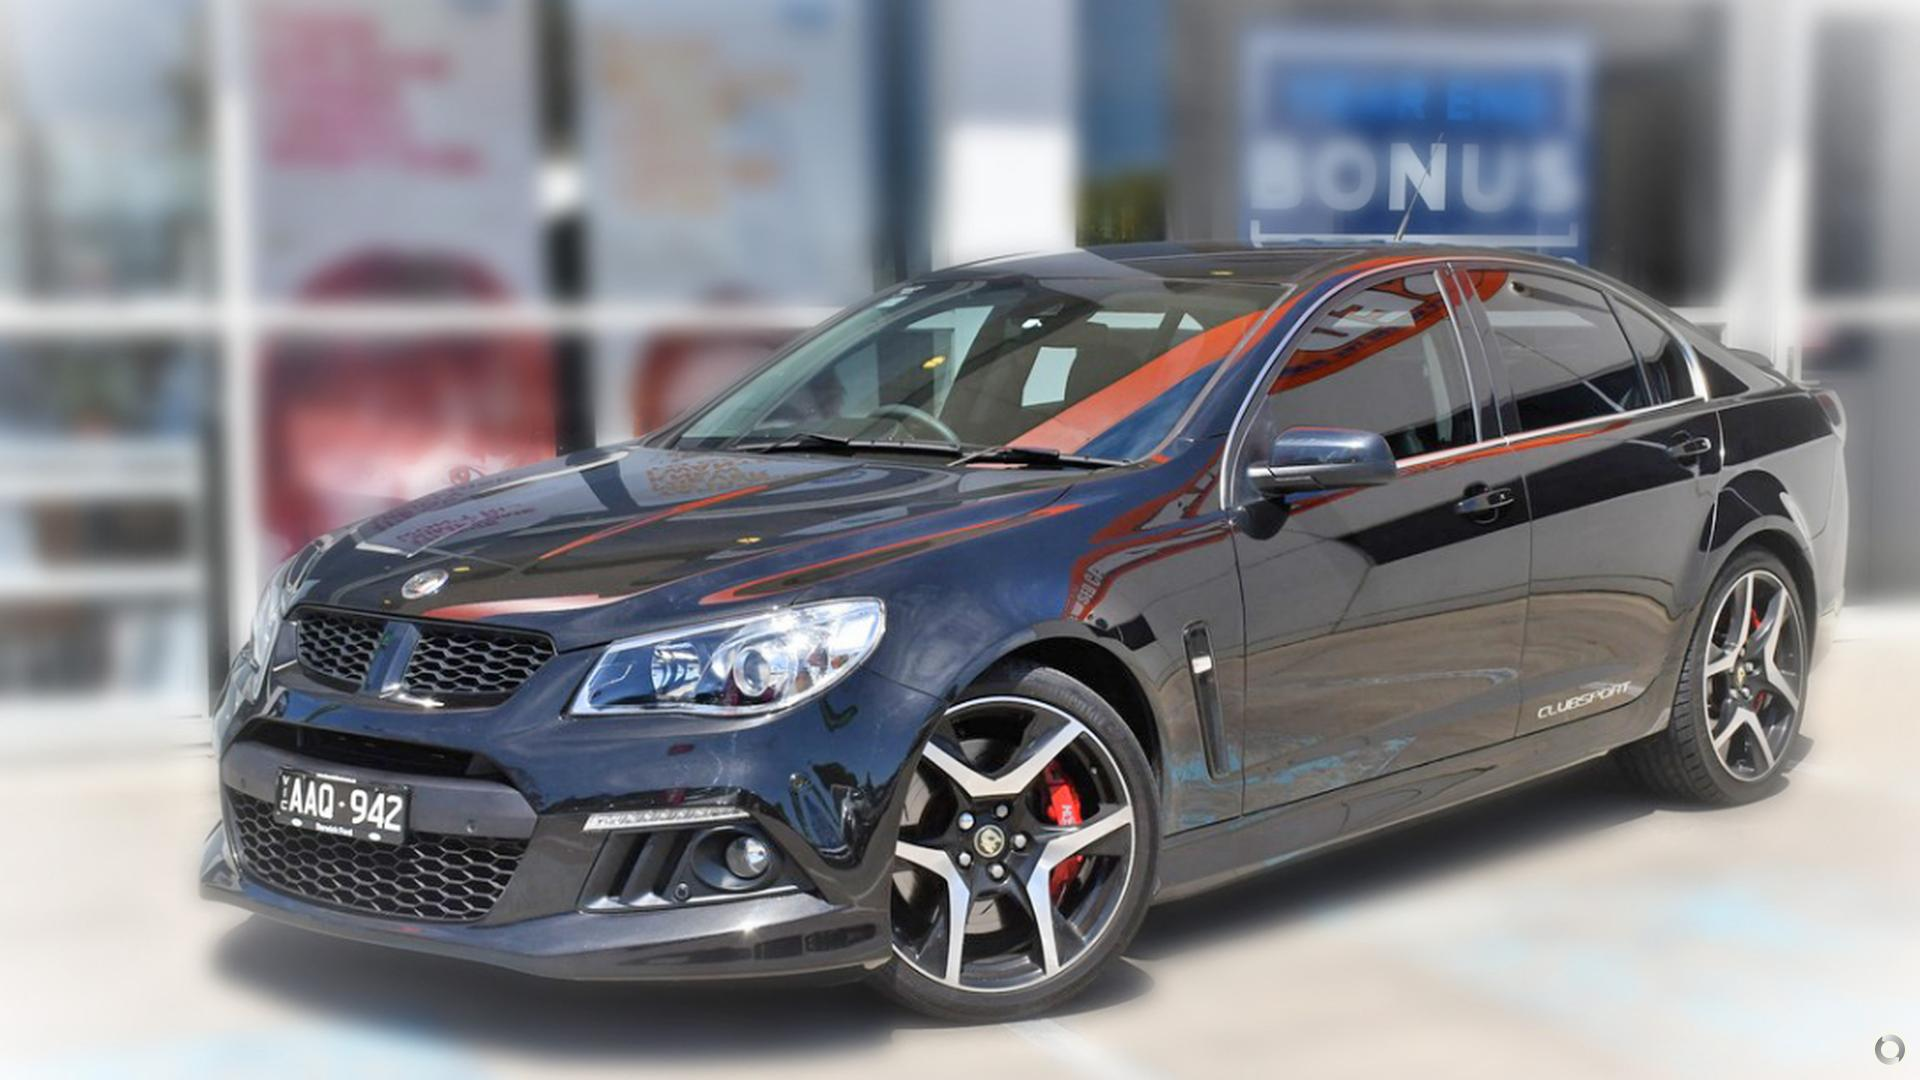 2013 Holden Special Vehicles Clubsport R8 GEN-F